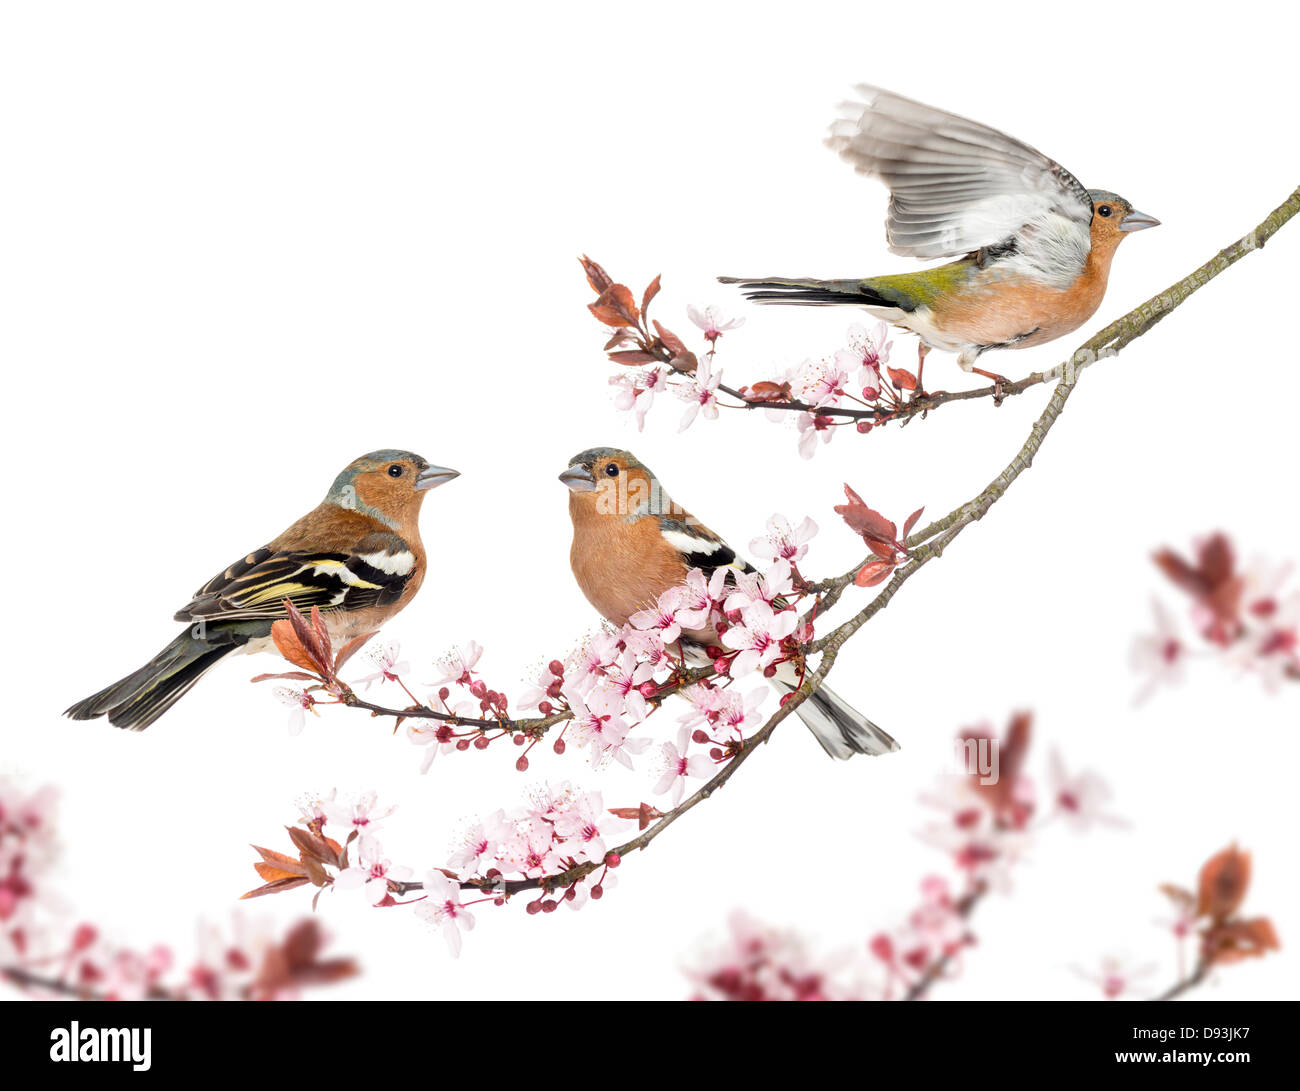 Group of Common Chaffinch, Fringilla coelebs, perched on Japanese Cherry branch against white background - Stock Image